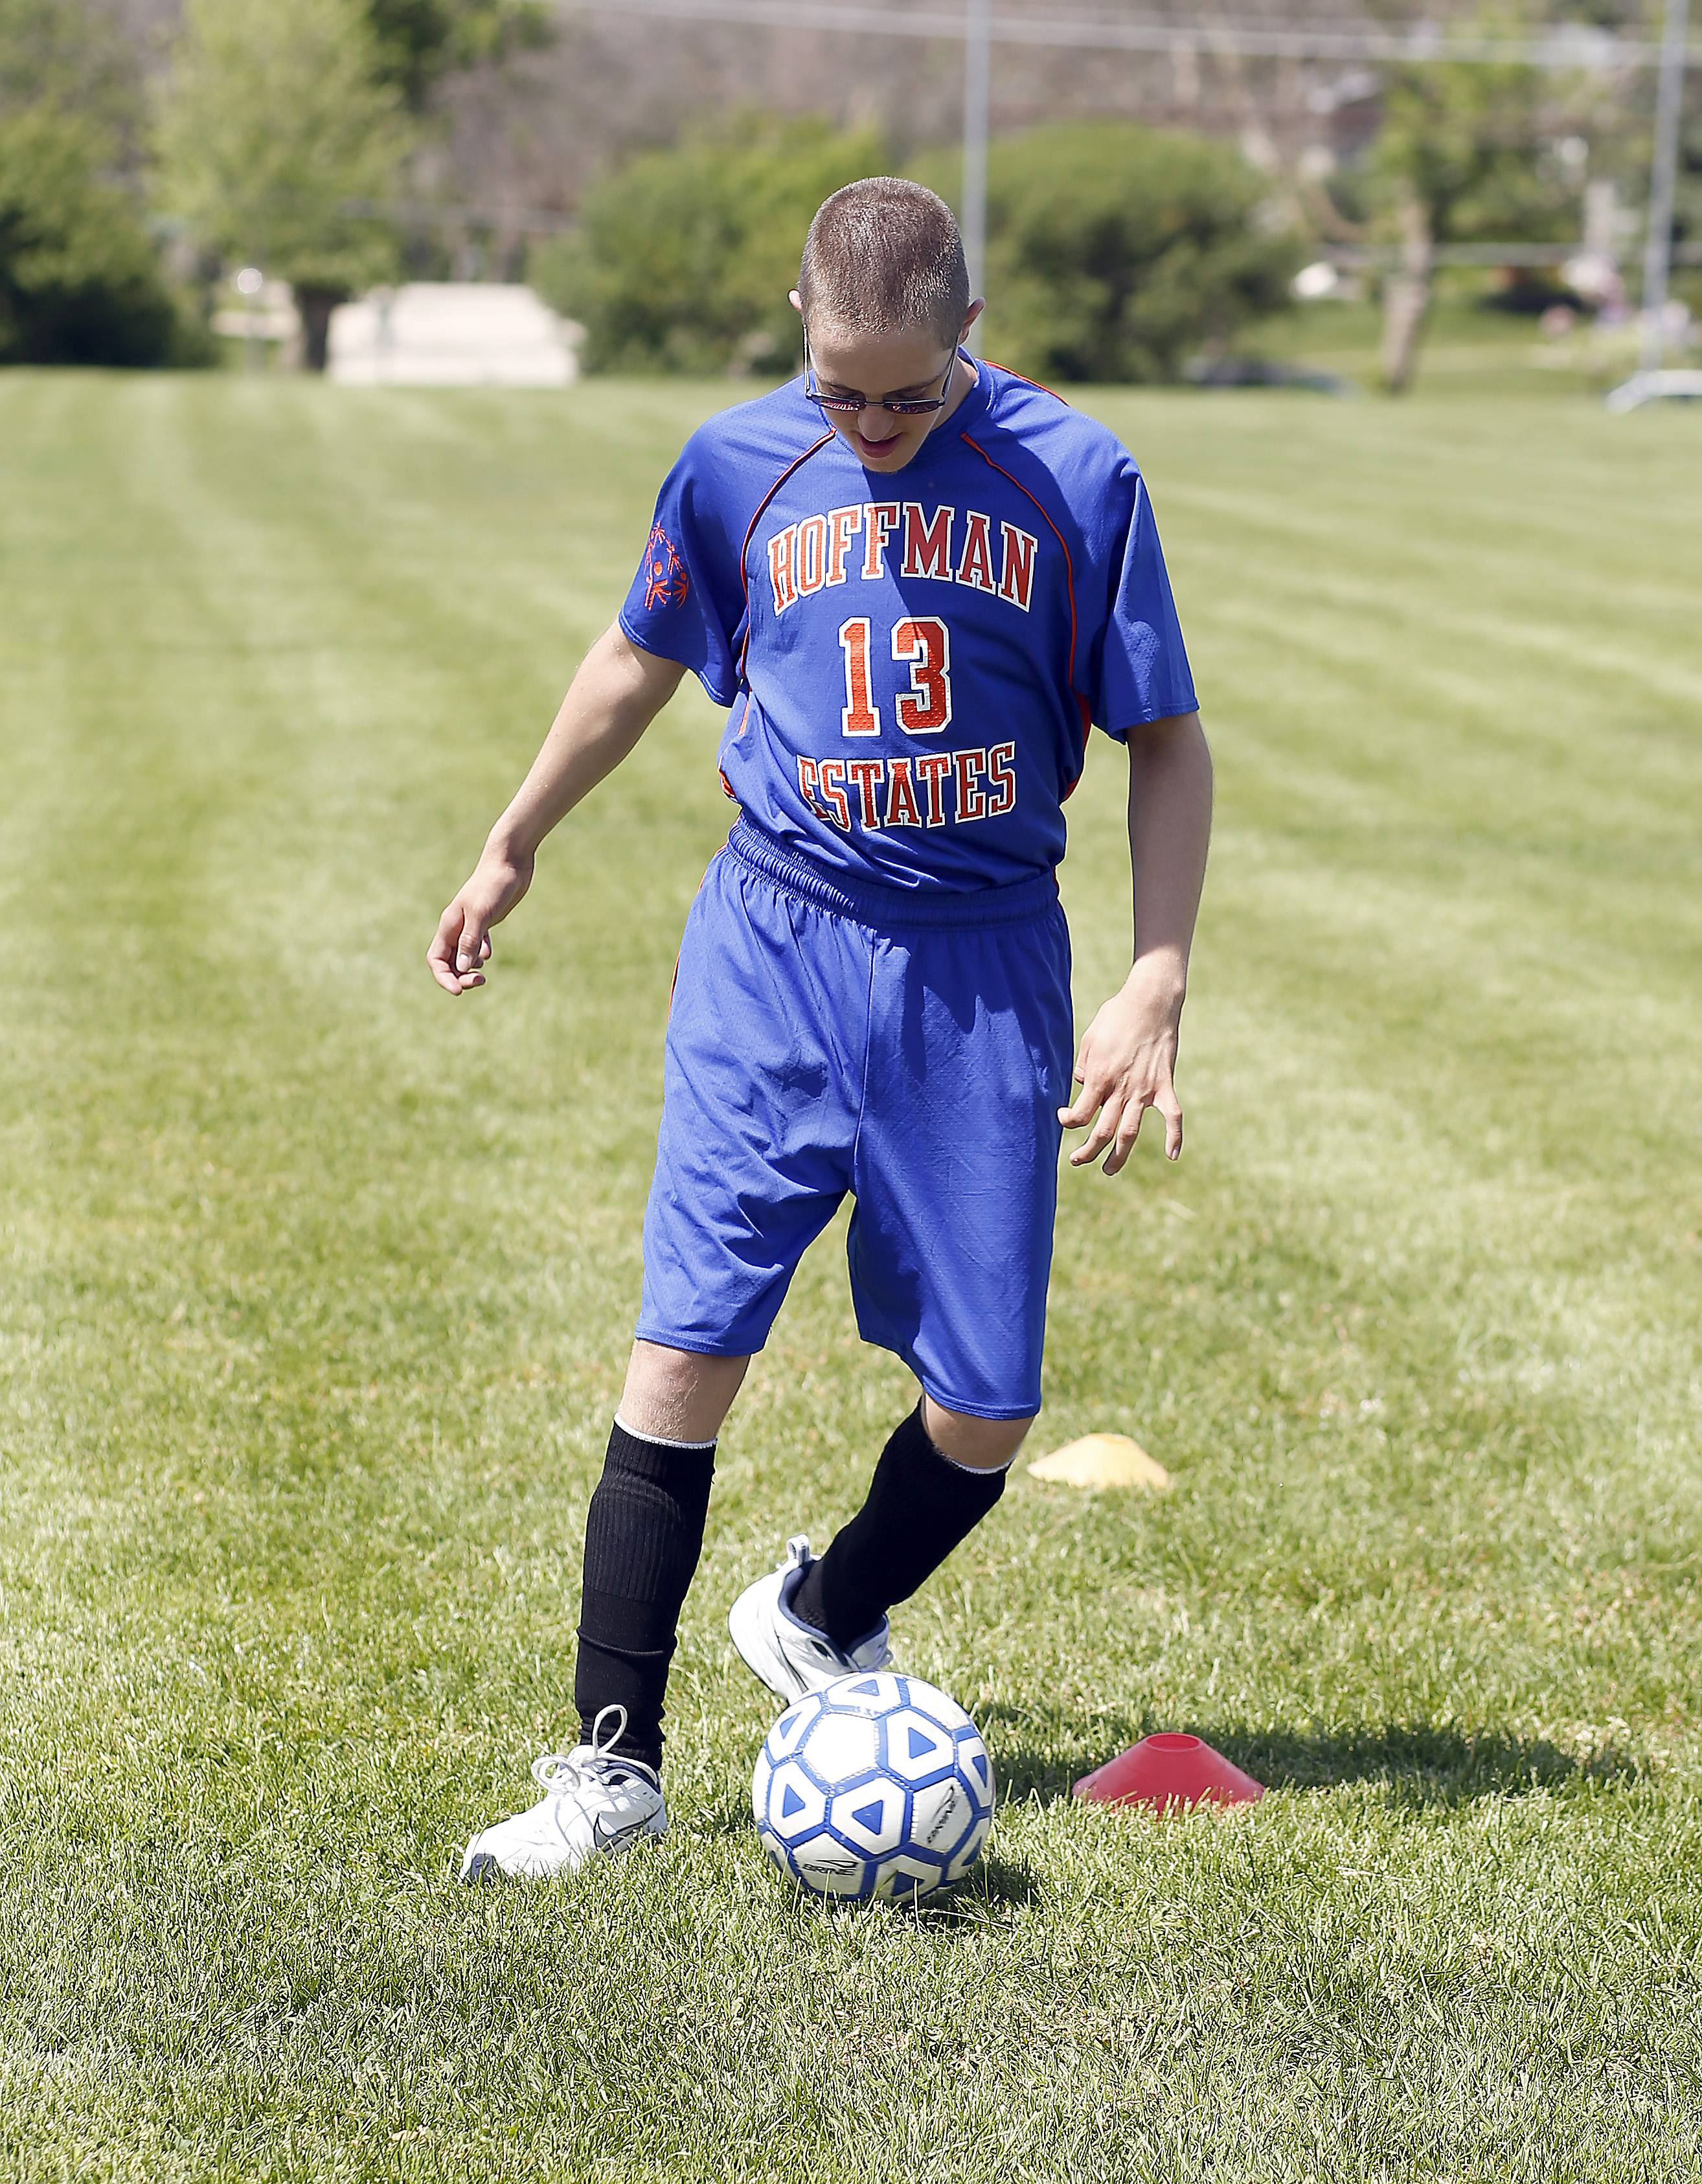 Teen's passion for soccer culminates in trip to USA Games